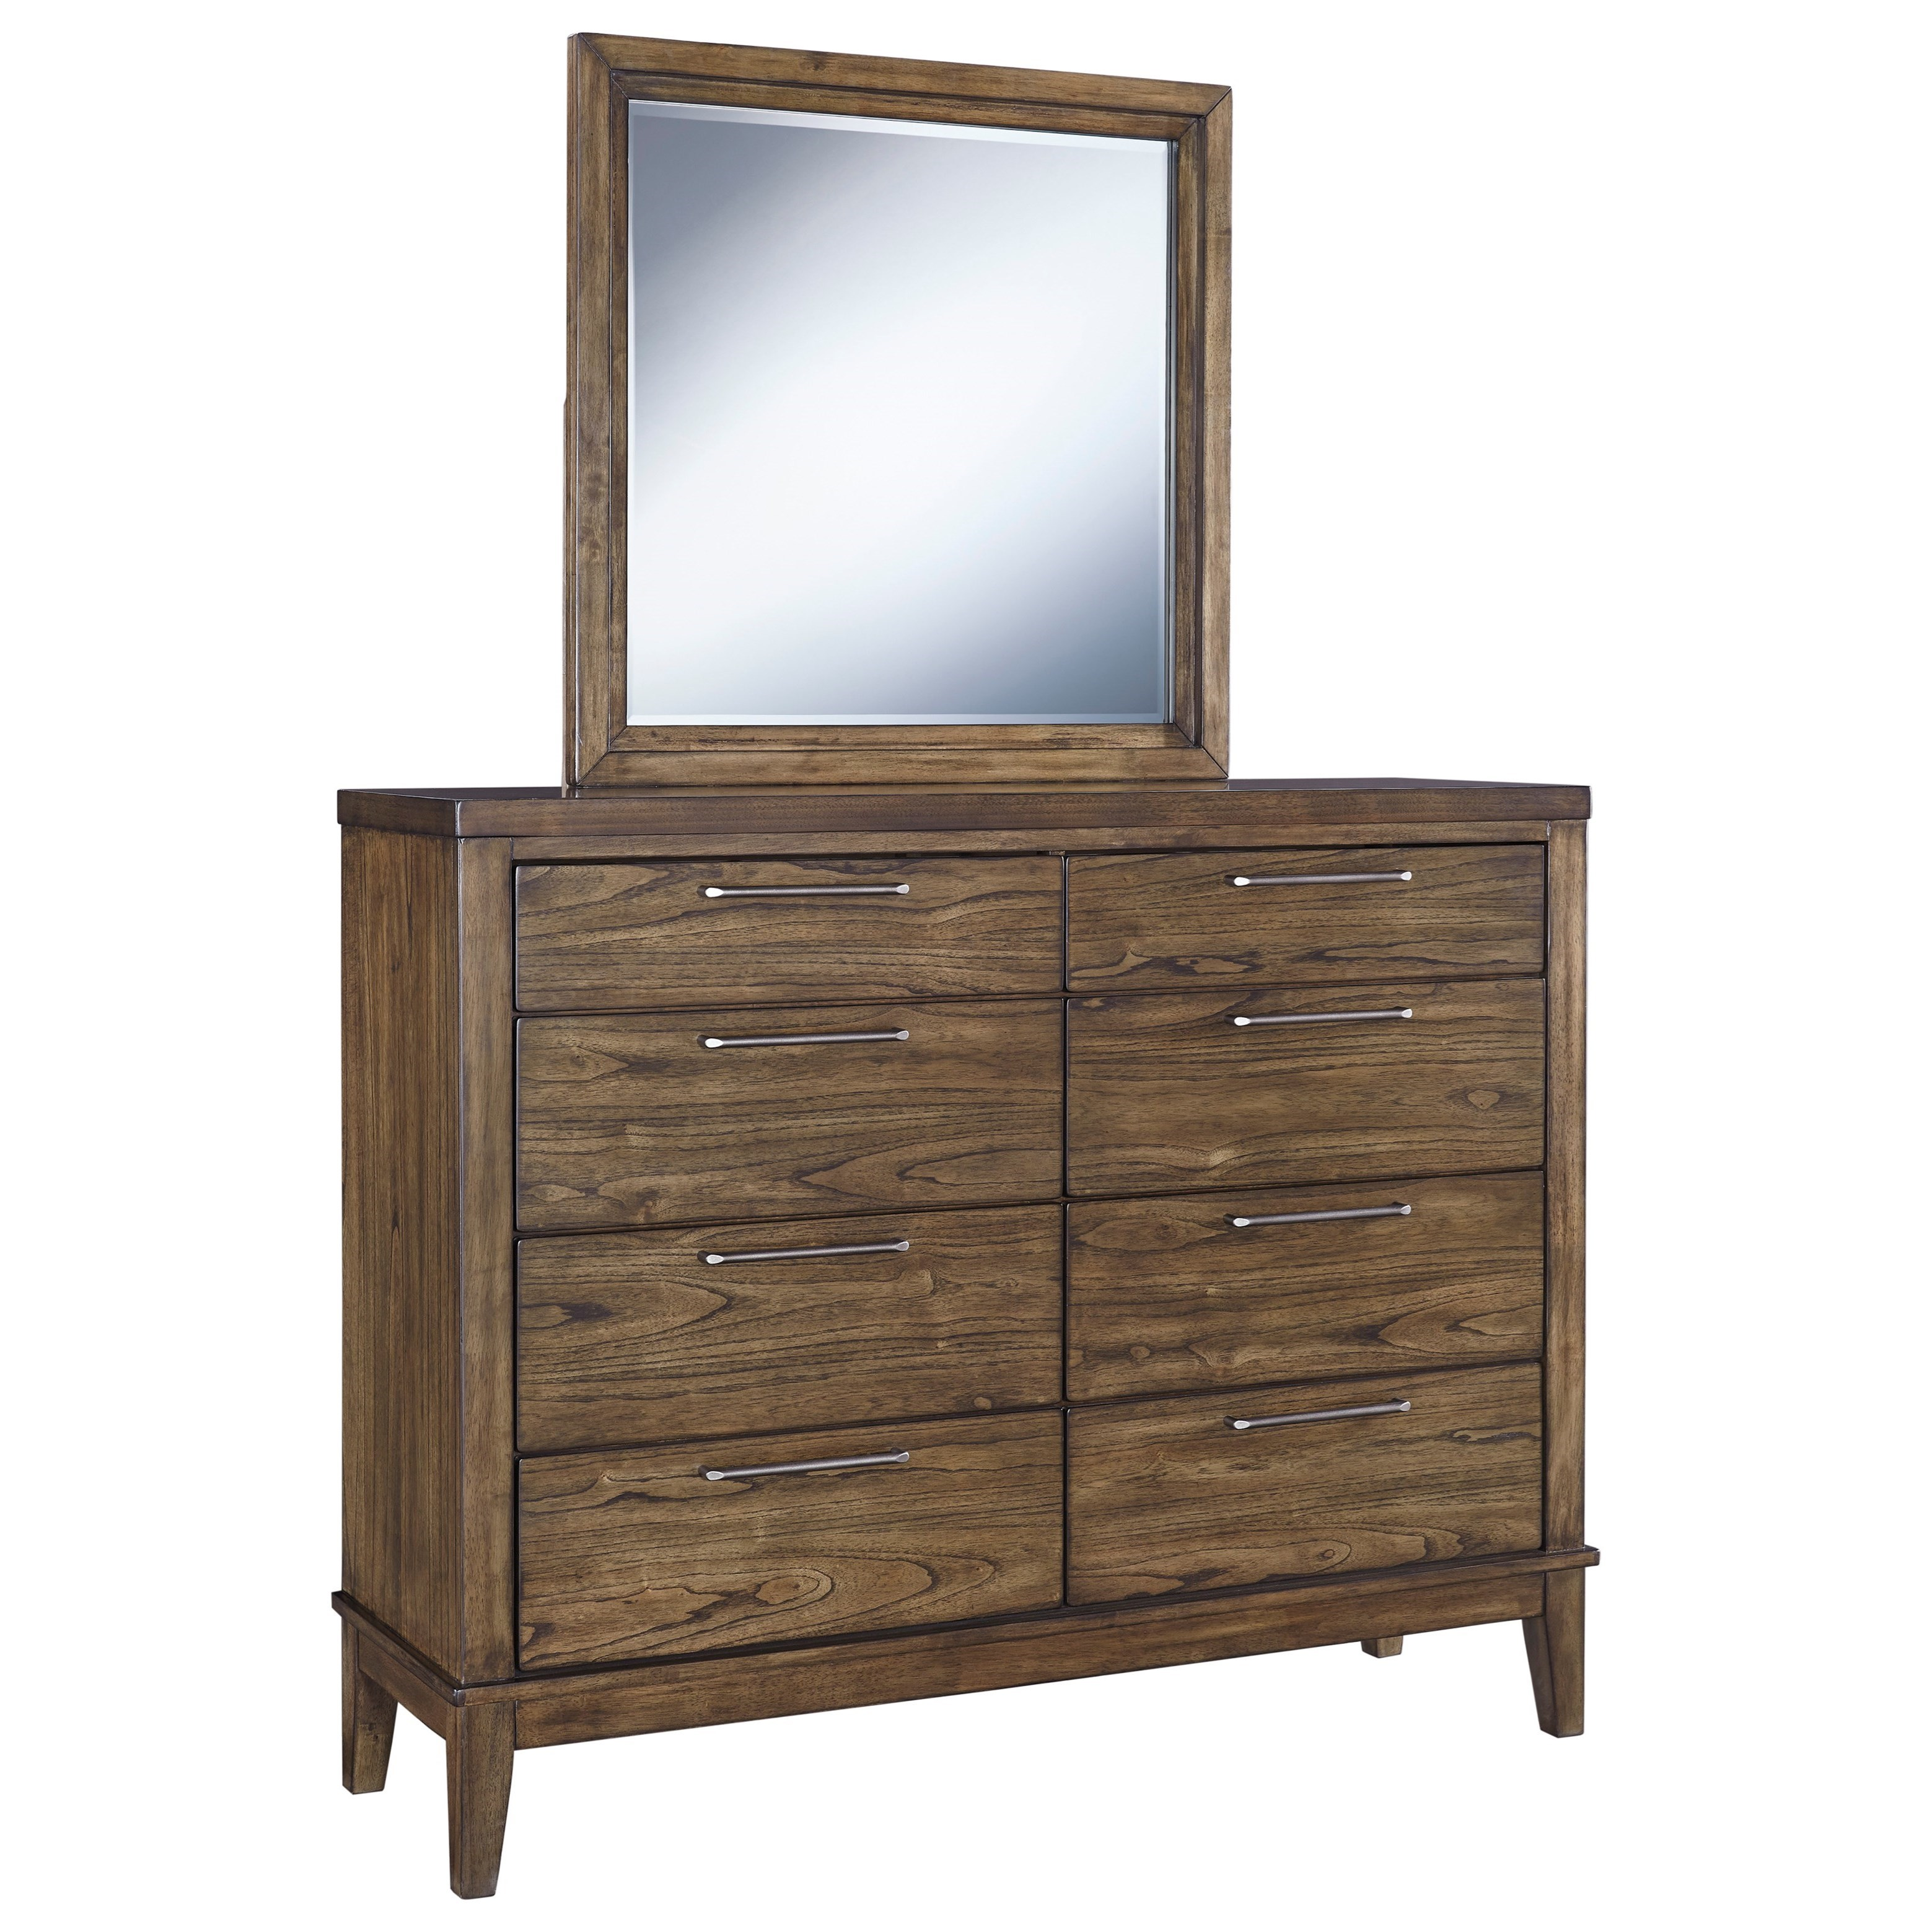 Signature design by ashley zilmar contemporary dresser for Signature bedroom furniture